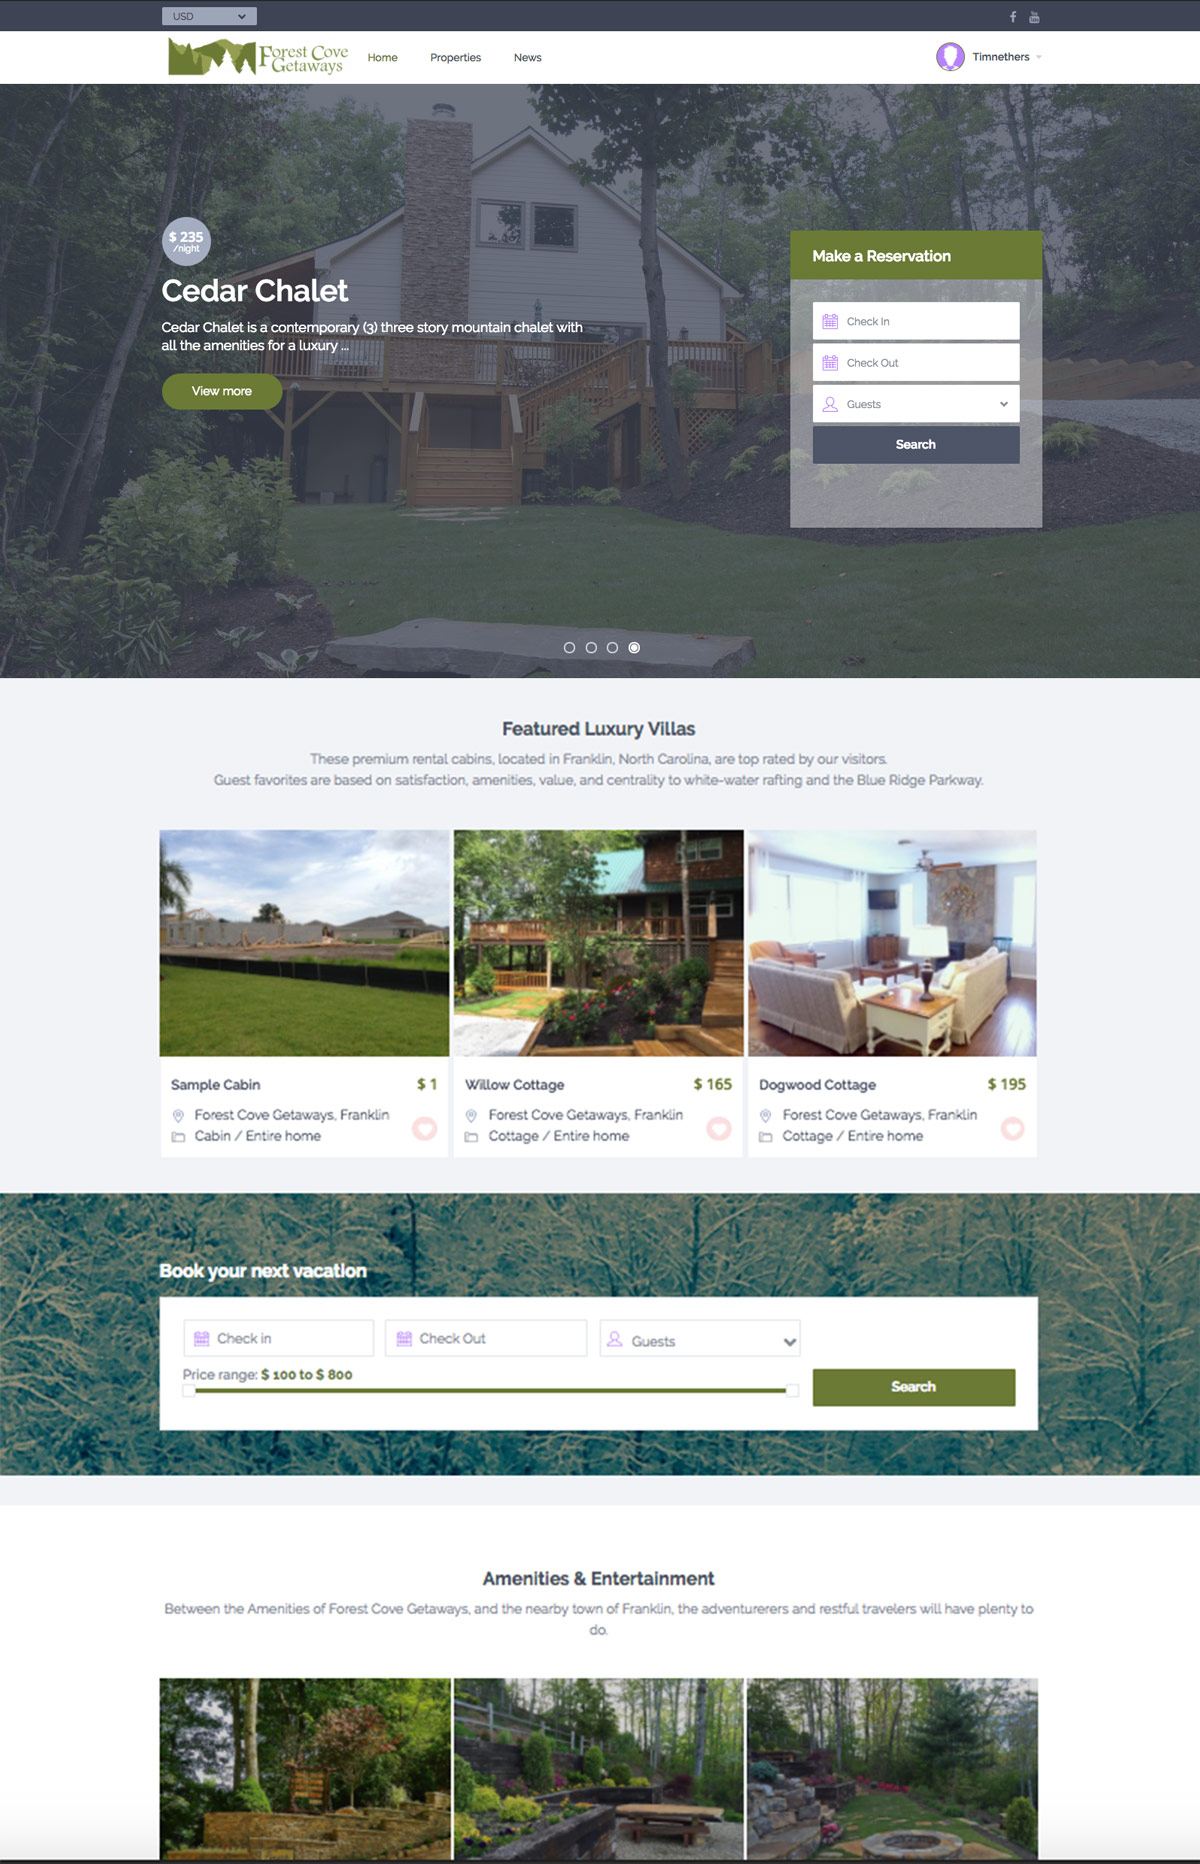 Rental Cabins Website Design